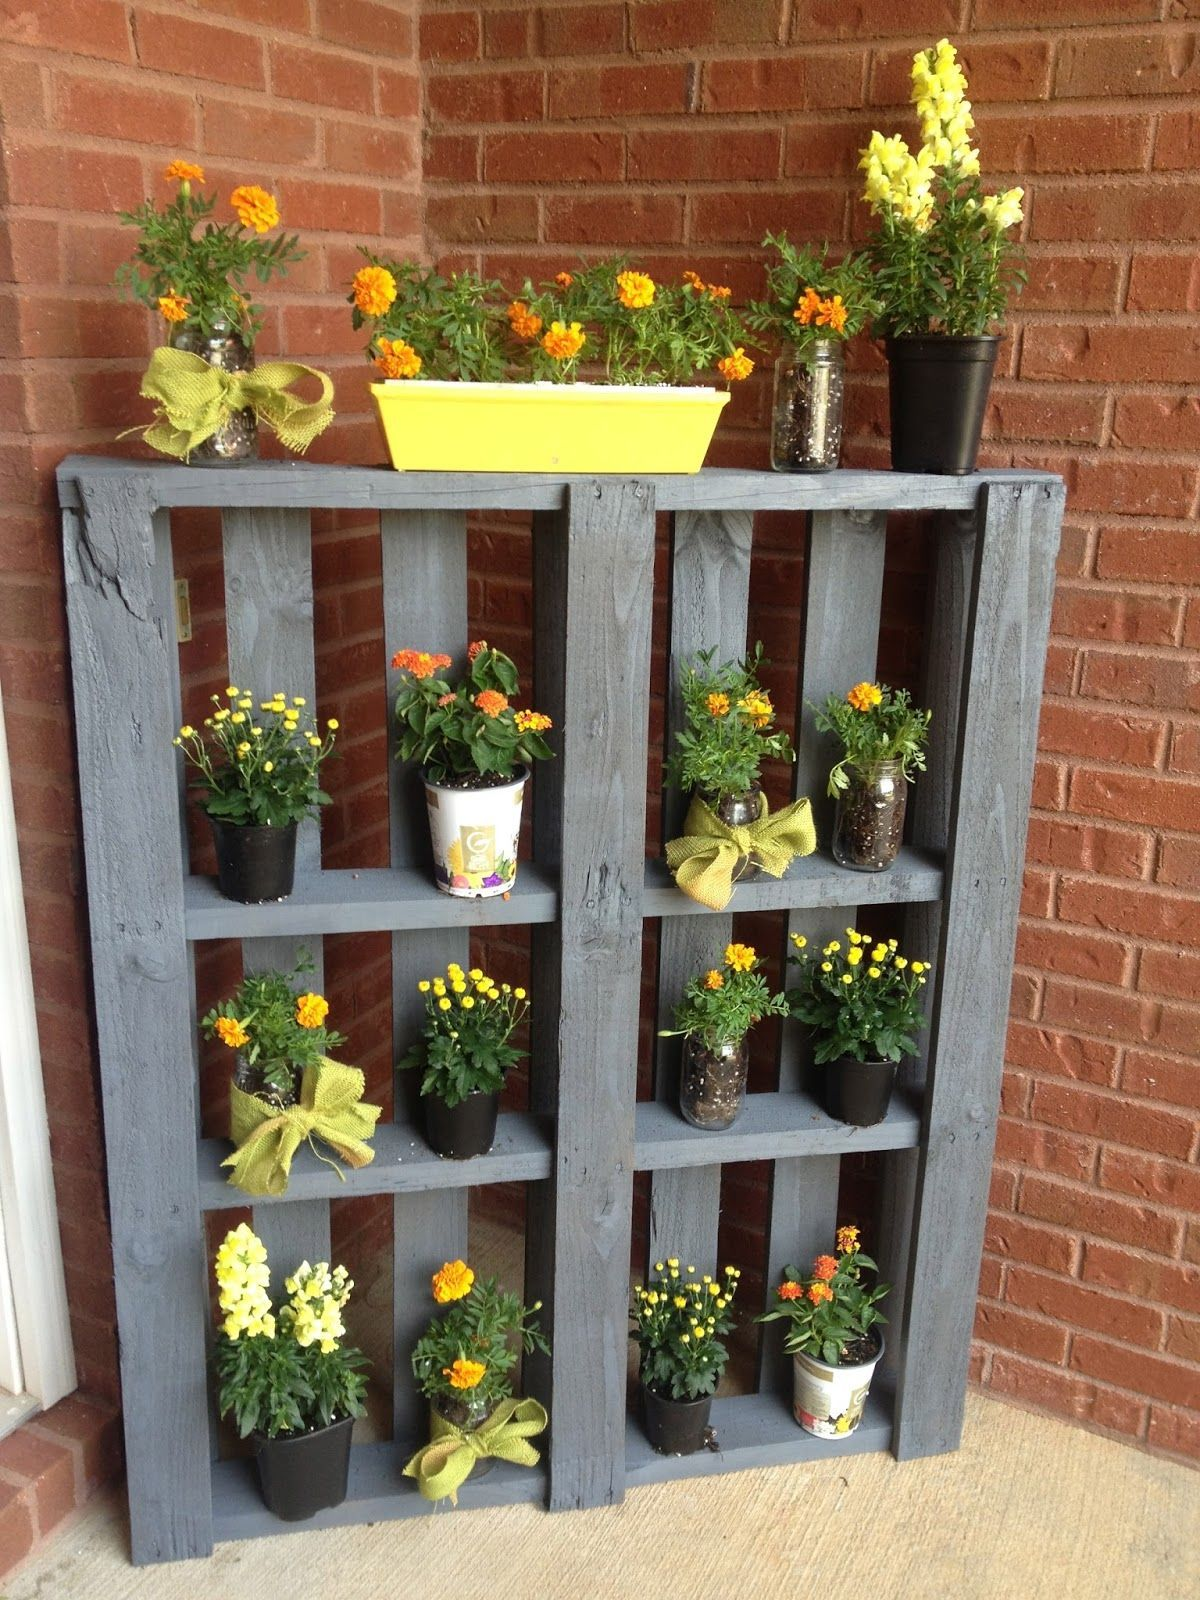 Diy pallet garden projects diy rustic pallet planter box creative - Diy Furniture Projects Made Of Whole Pallets